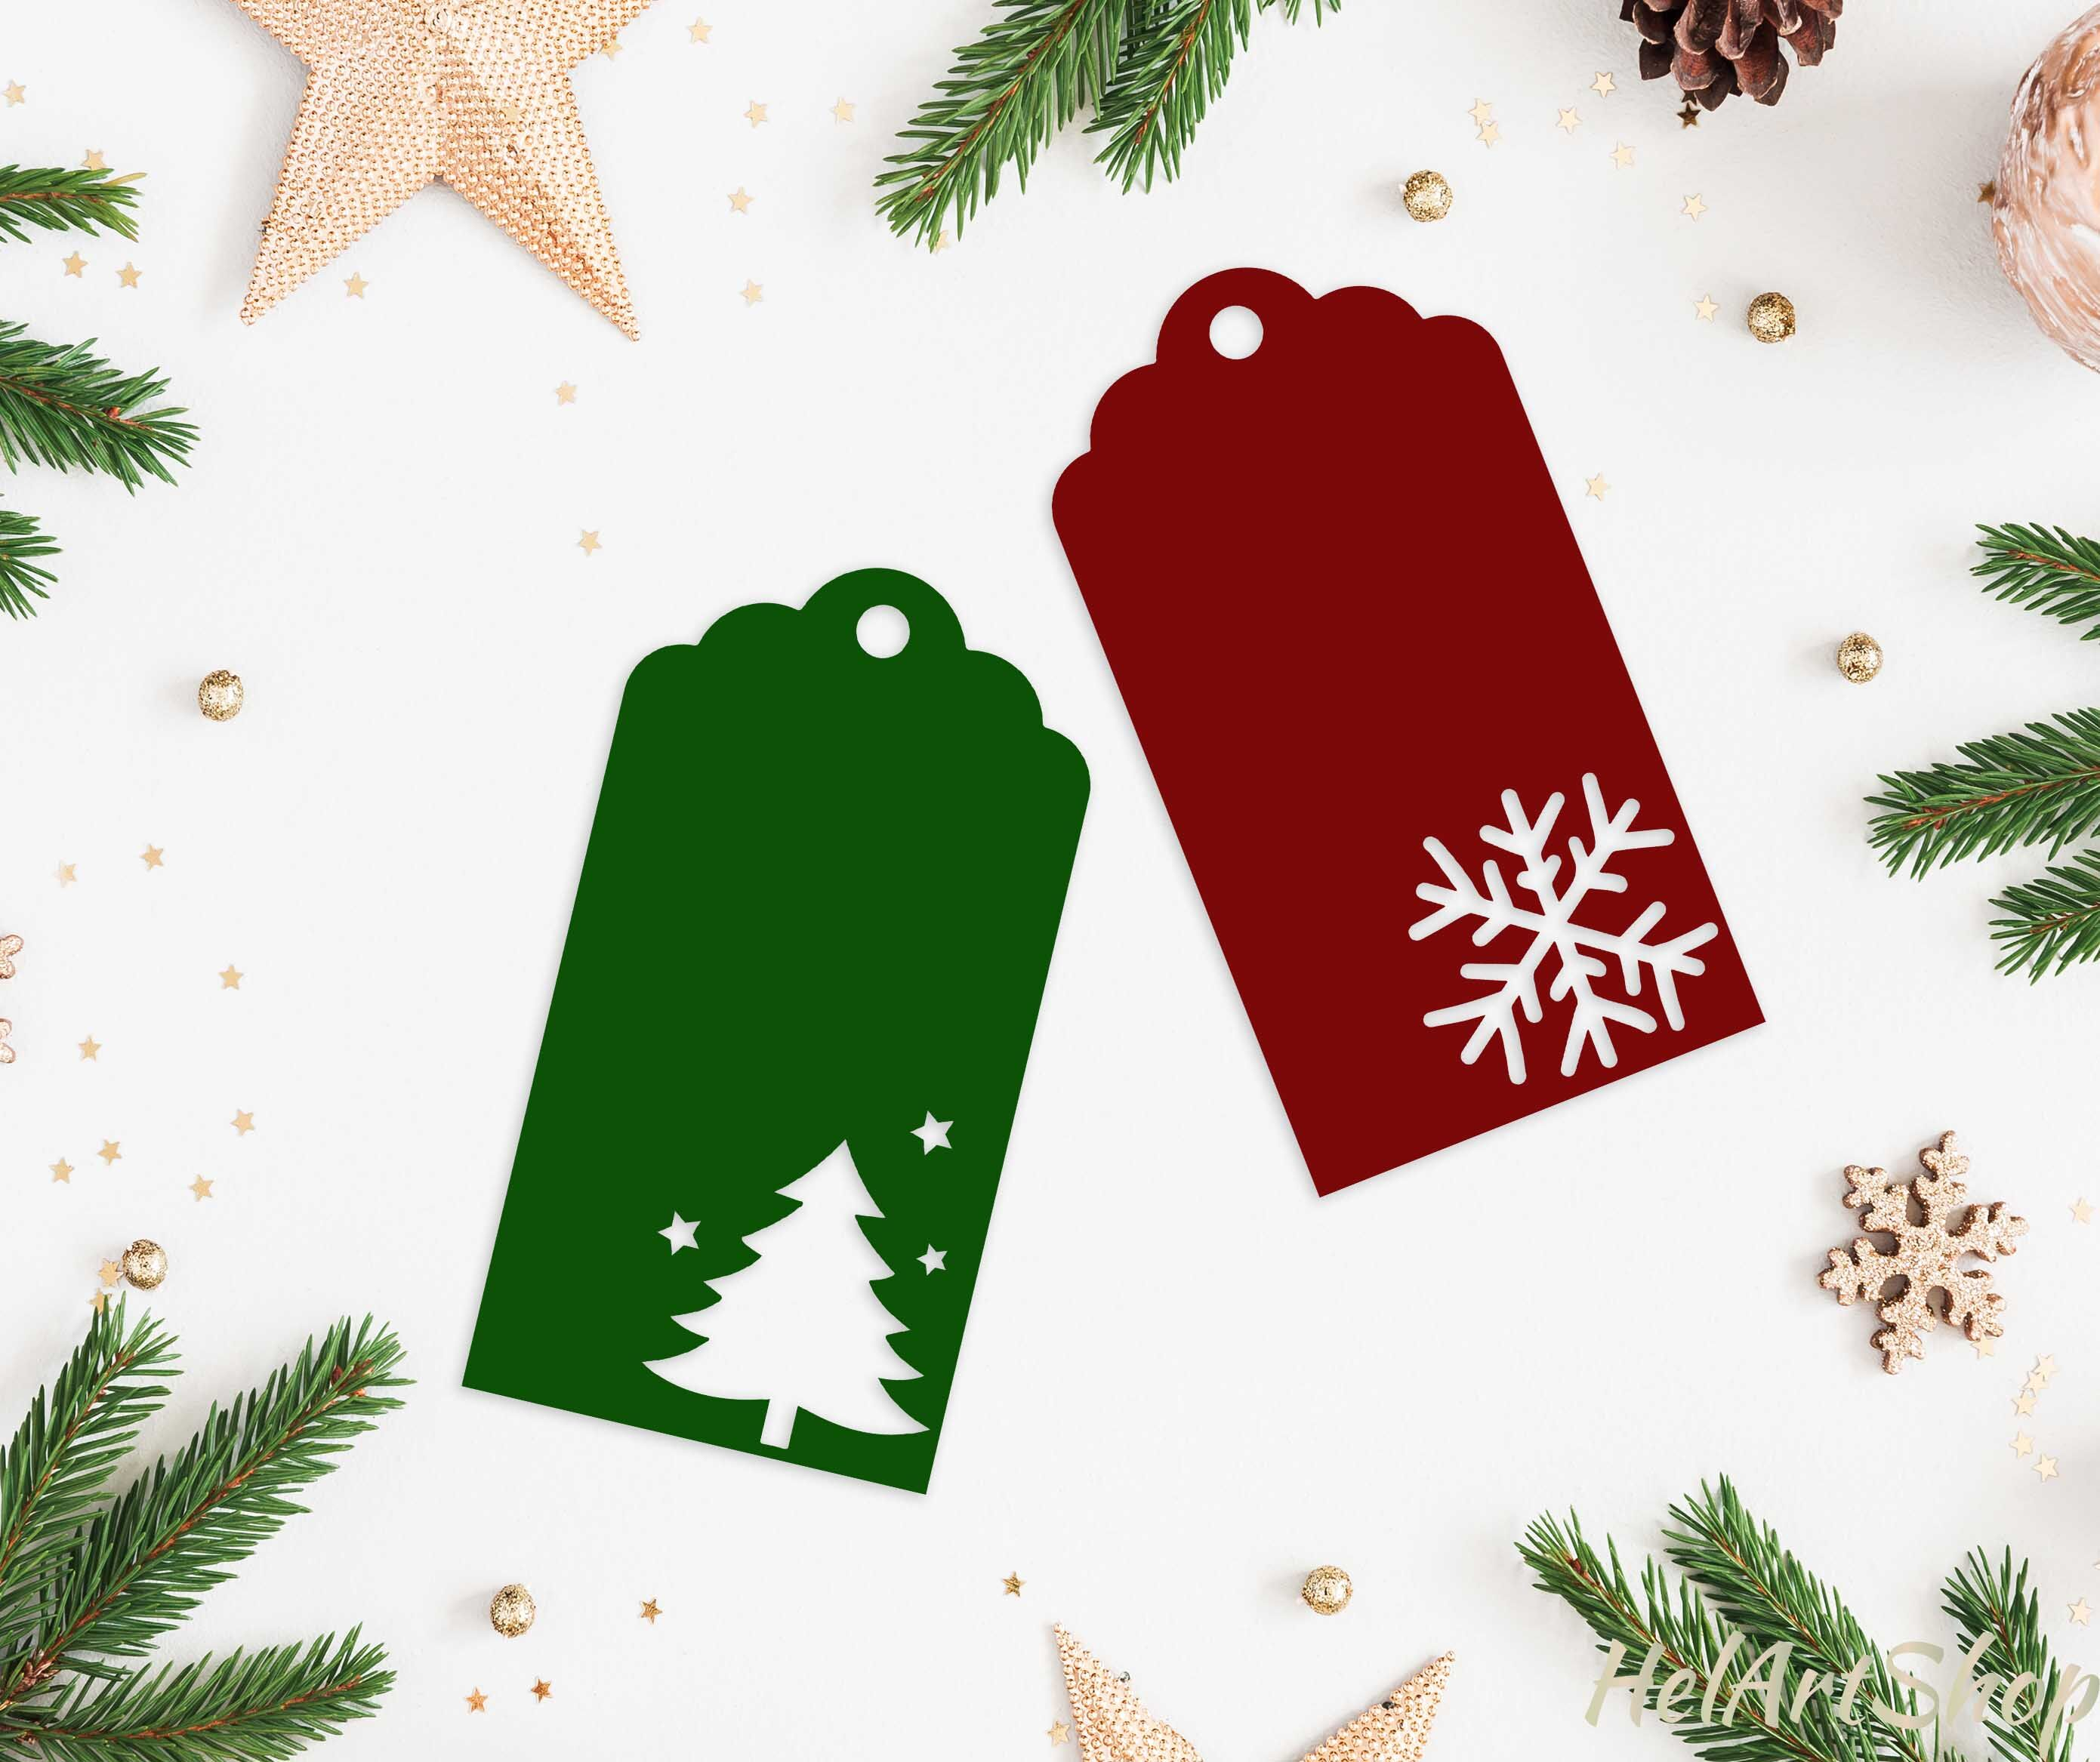 Christmas Gift Tags Svg Cutting File By Helartshop Thehungryjpeg Com